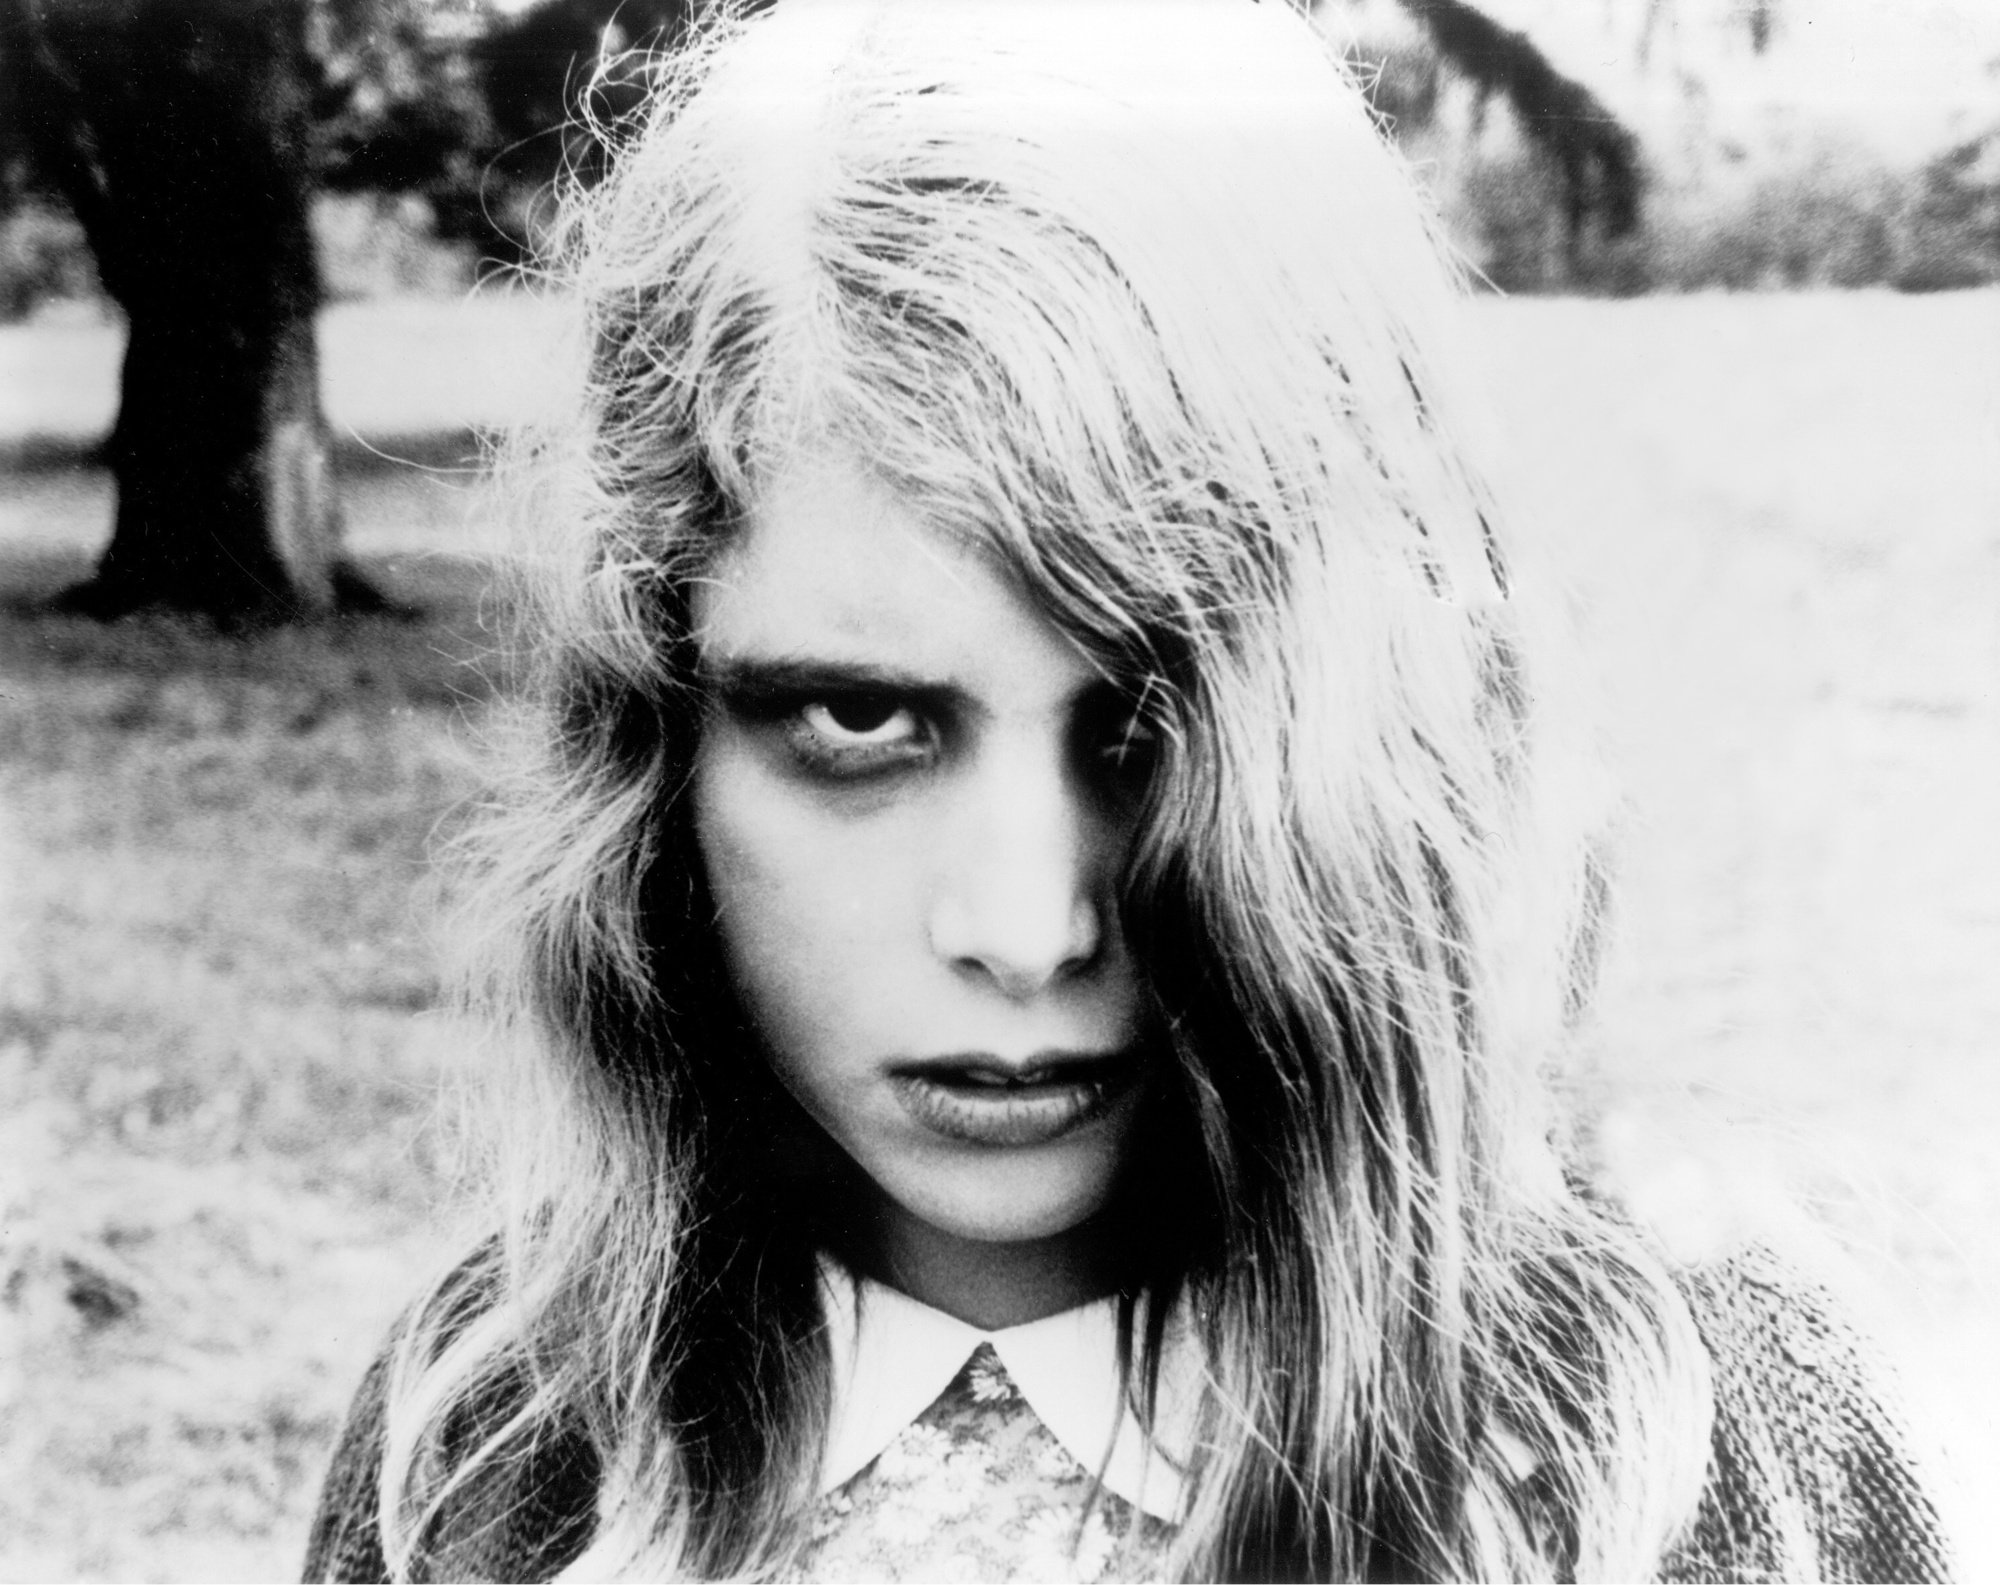 An image from Night of the Living Dead